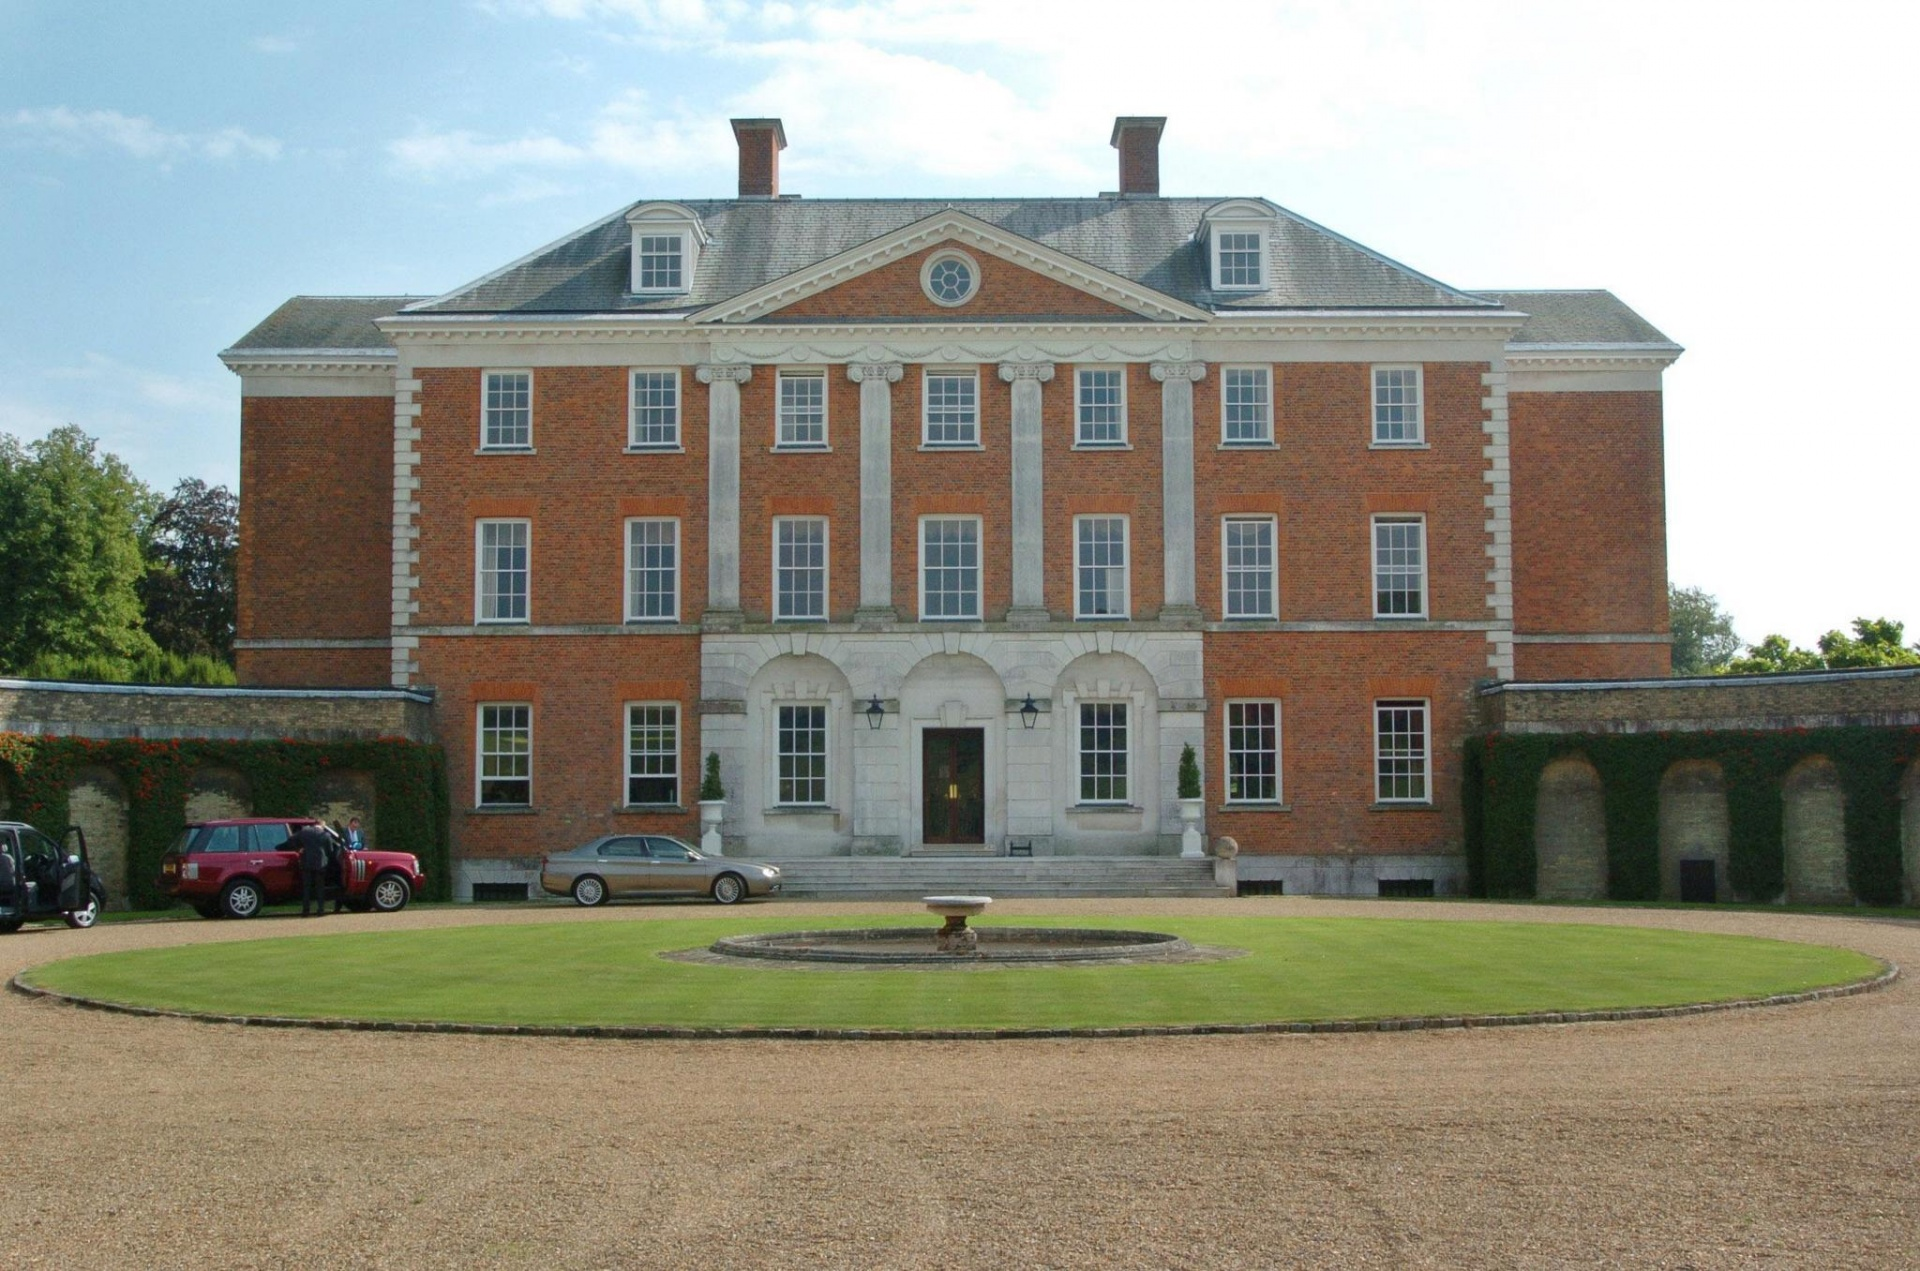 Chevening House in Kent (the country retreat usually used by the Foreign Secretary) where Boris Johnson has been 'dividing his time'